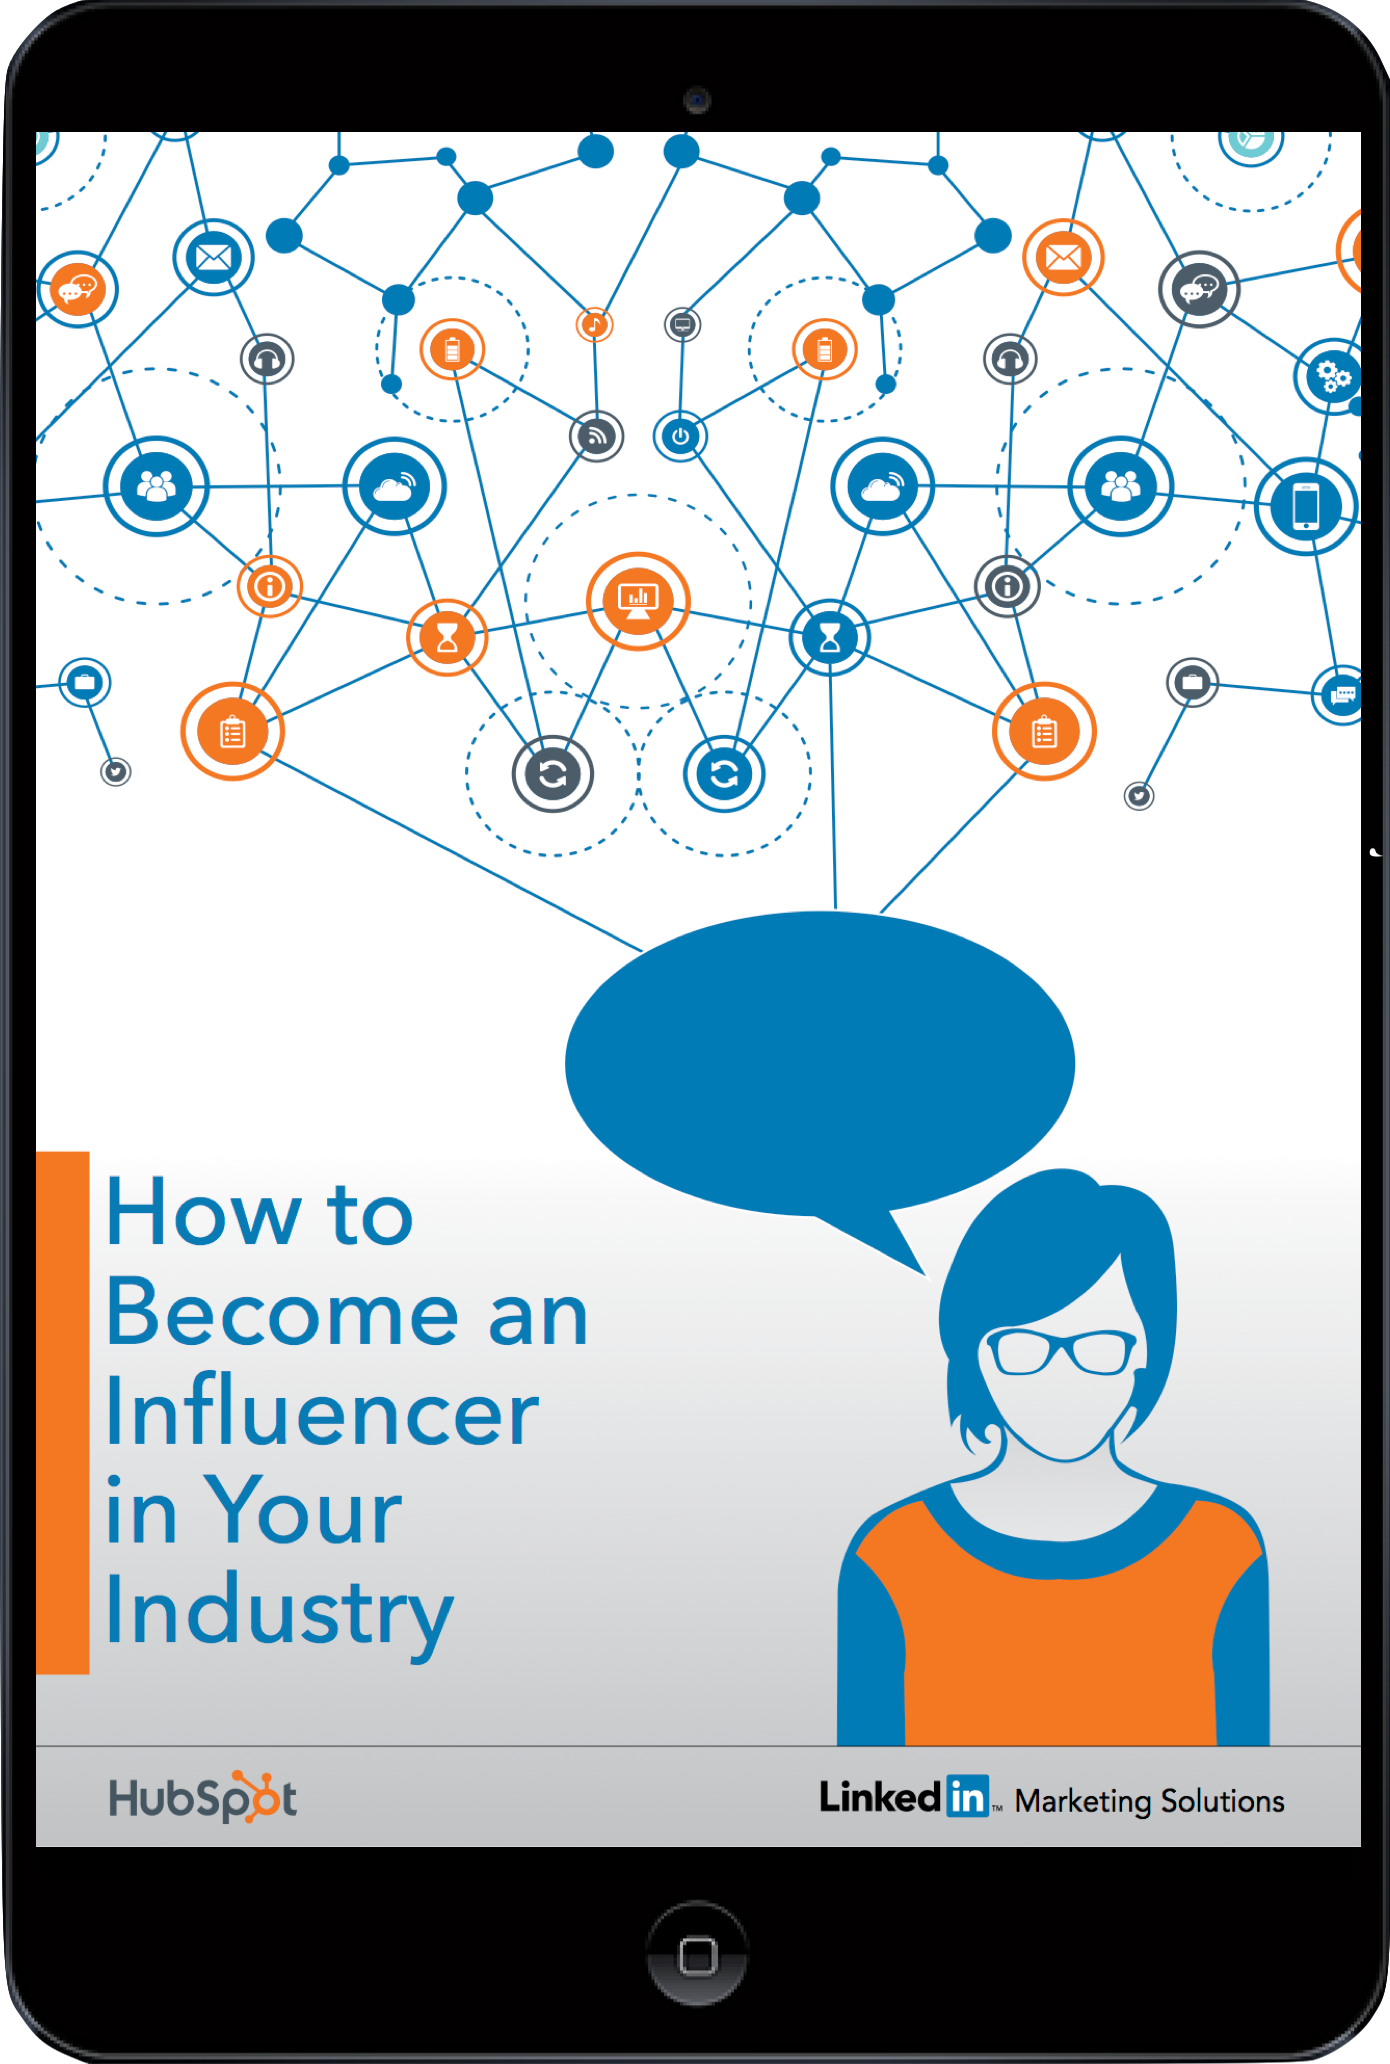 How to Become an Influencer in your Industry